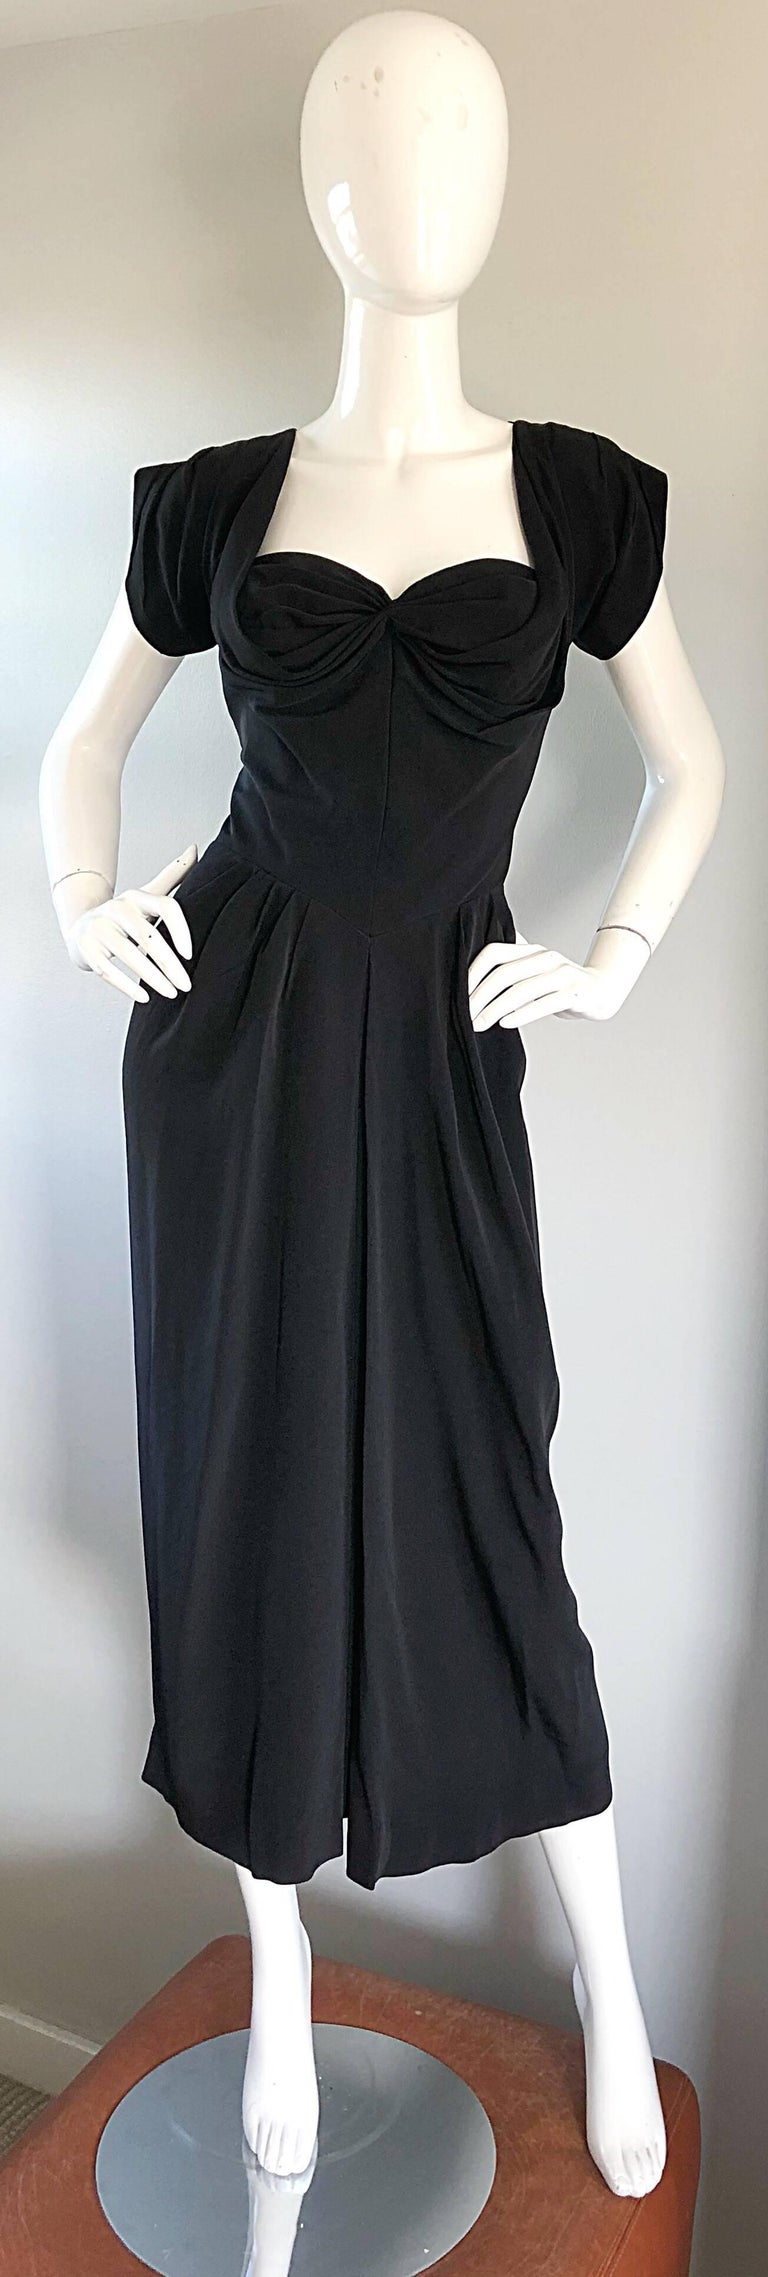 Gorgeous, classic, and just the right amount of sexy 1950s DOROTHY O'HARA demi couture black silk crepe dress! Dorthy O'Hara was a leading designer of the 40s and 50s. She was a favorite go to for Marilyn Monroe, Jayne Mansfield, Sophia Loren, etc.